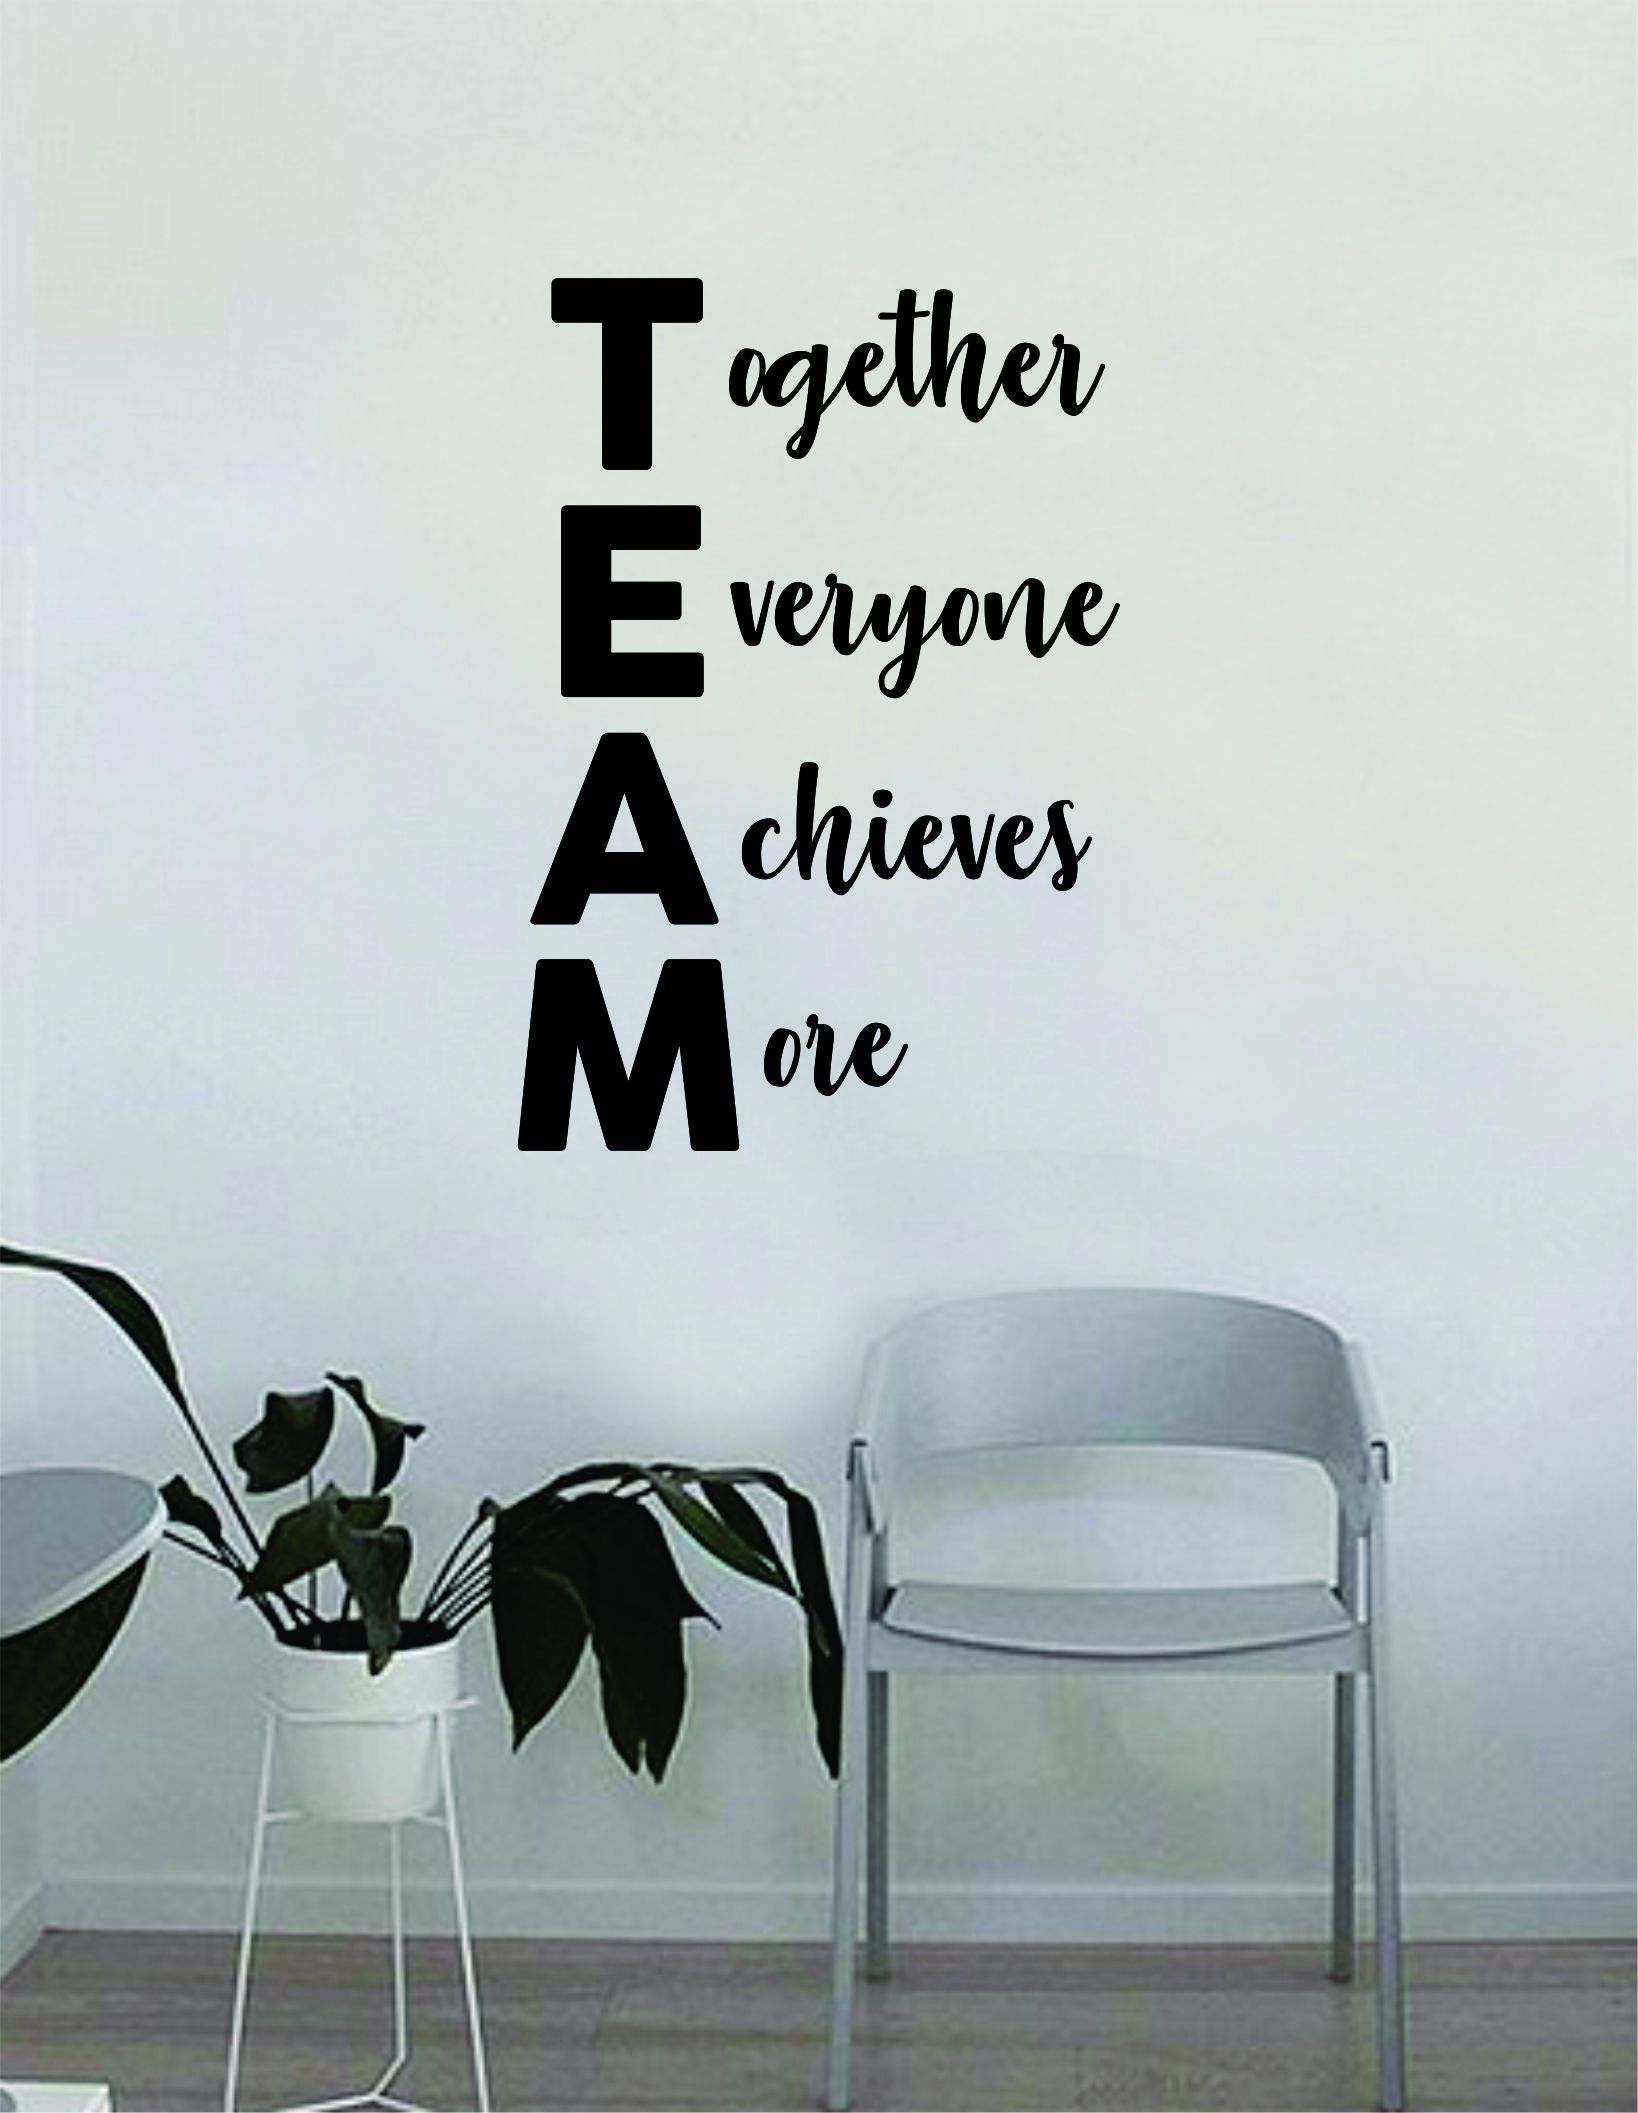 Team Together Everyone Achieves More Quote Decal Sticker Wall Vinyl Art Home Room Decor Teacher School Classroom Science Work Office Job - vivid blue